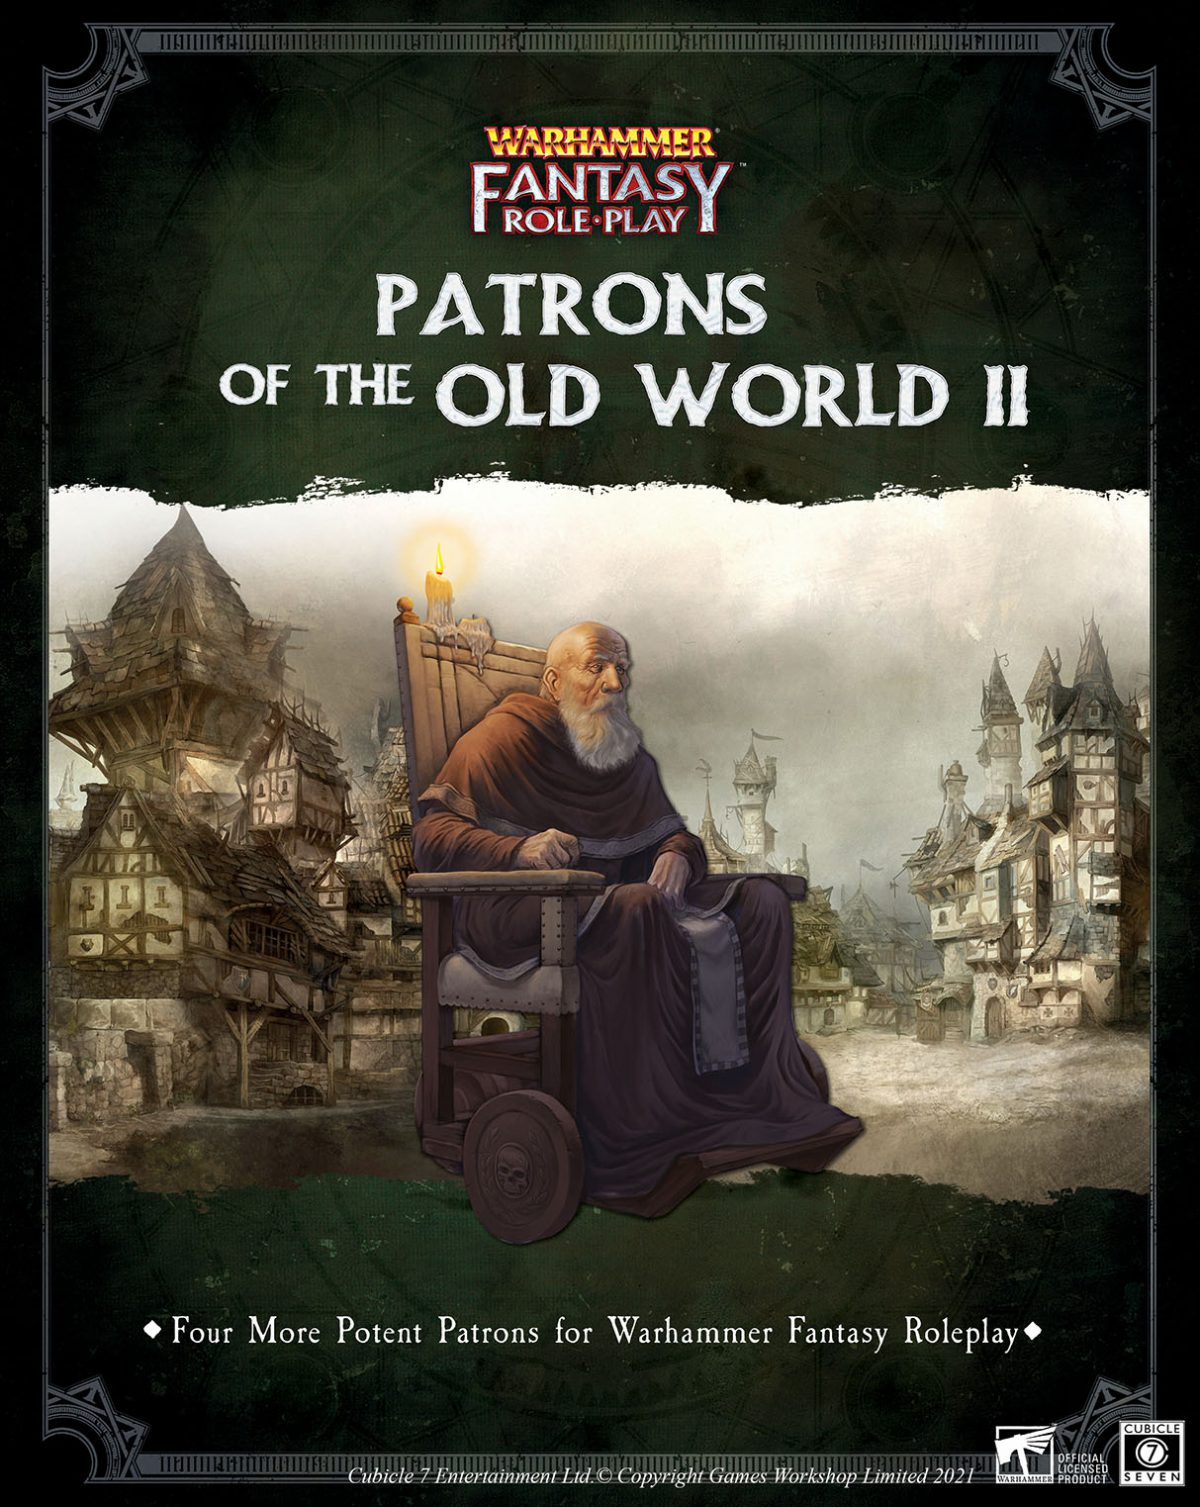 Patrons Of The Old World Part II - Warhammer Fantasy Role-Play